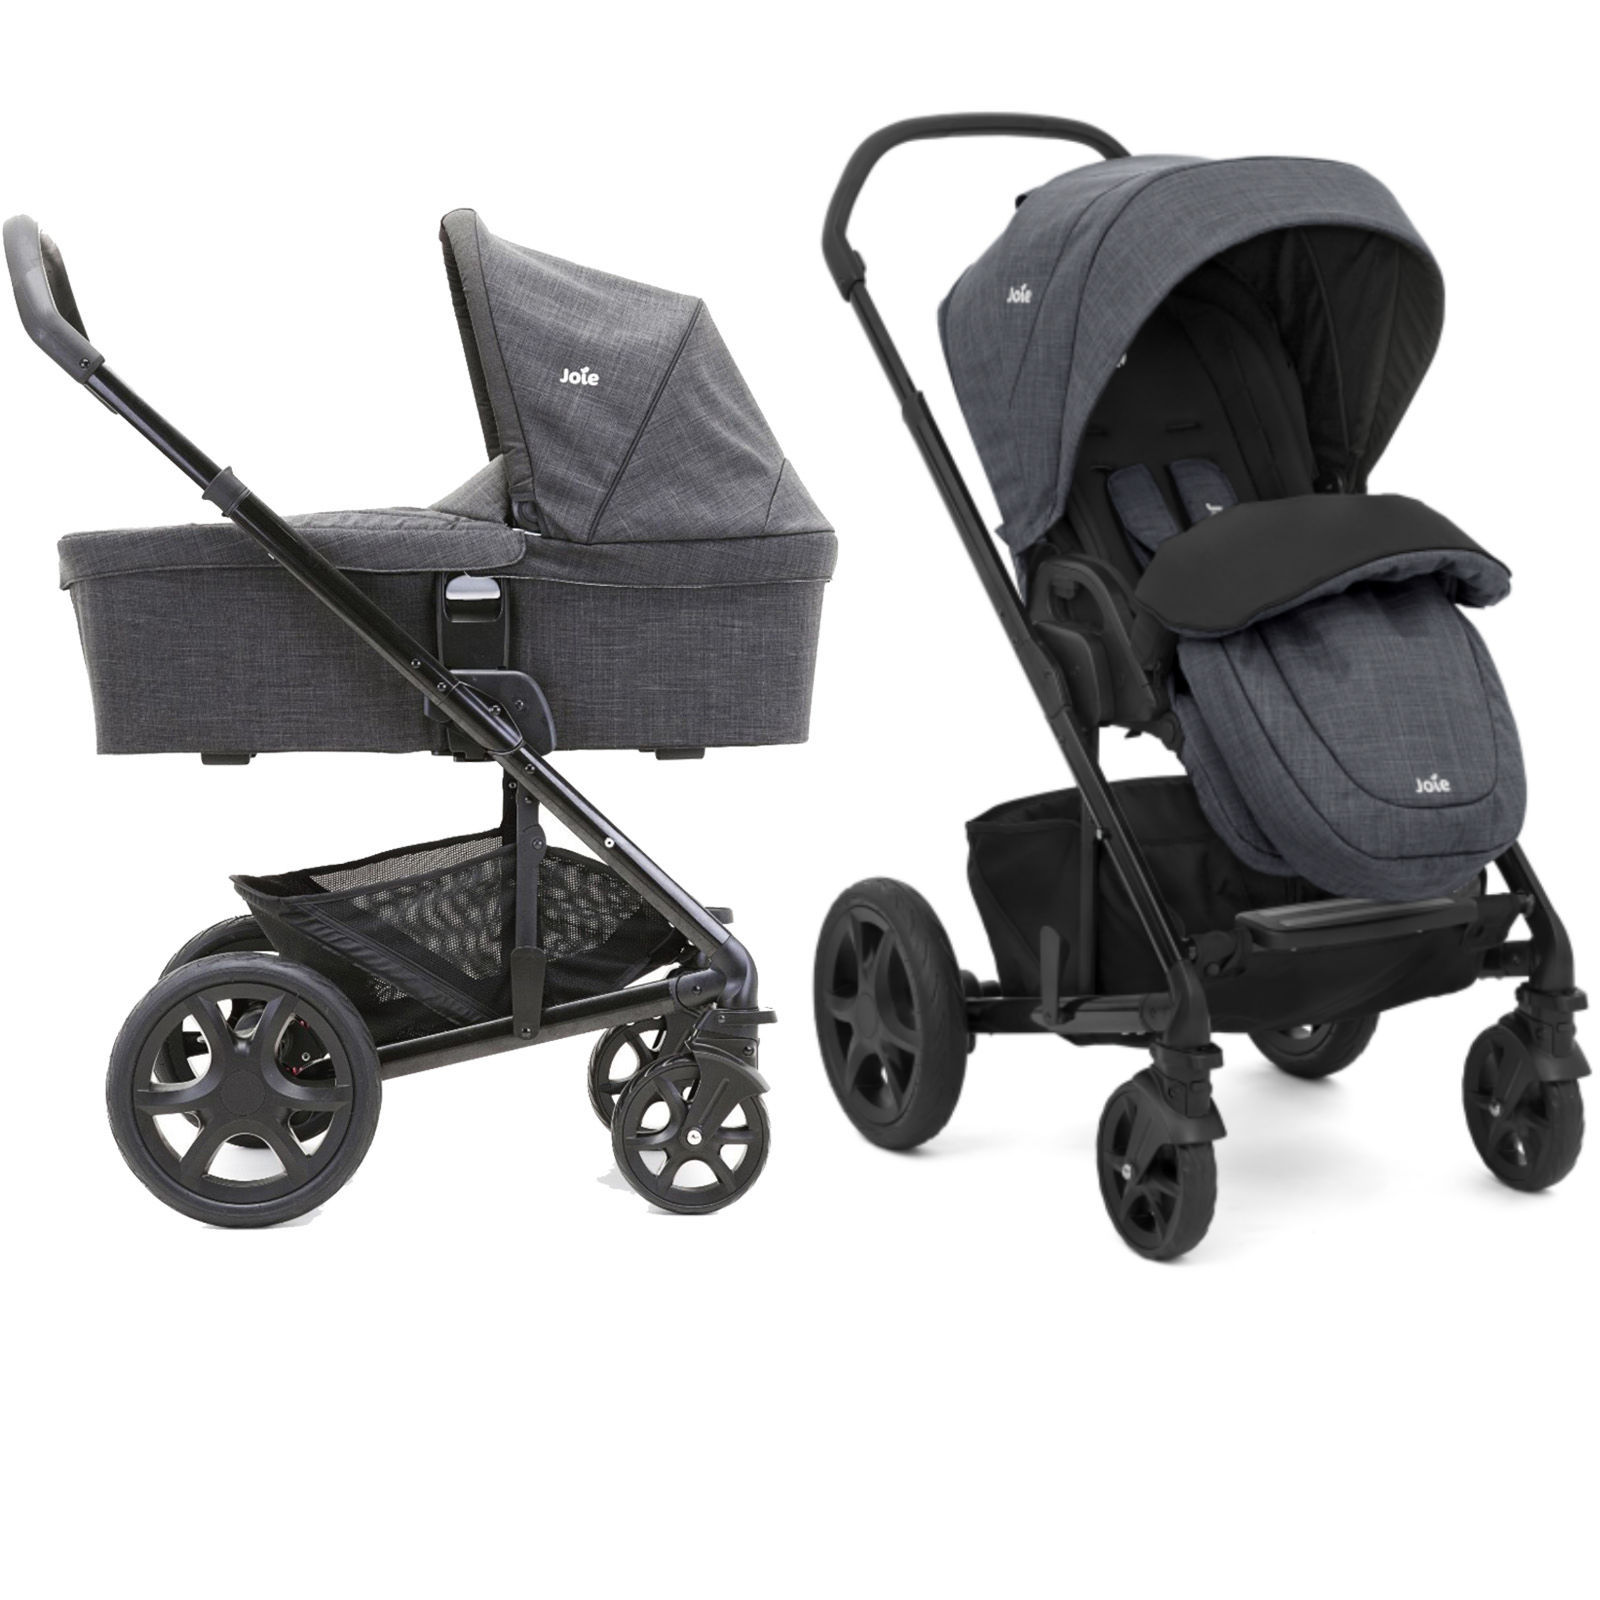 Joie Buggy Chrome Test Joie Chrome Dlx Pushchair Inc Footmuff Carrycot